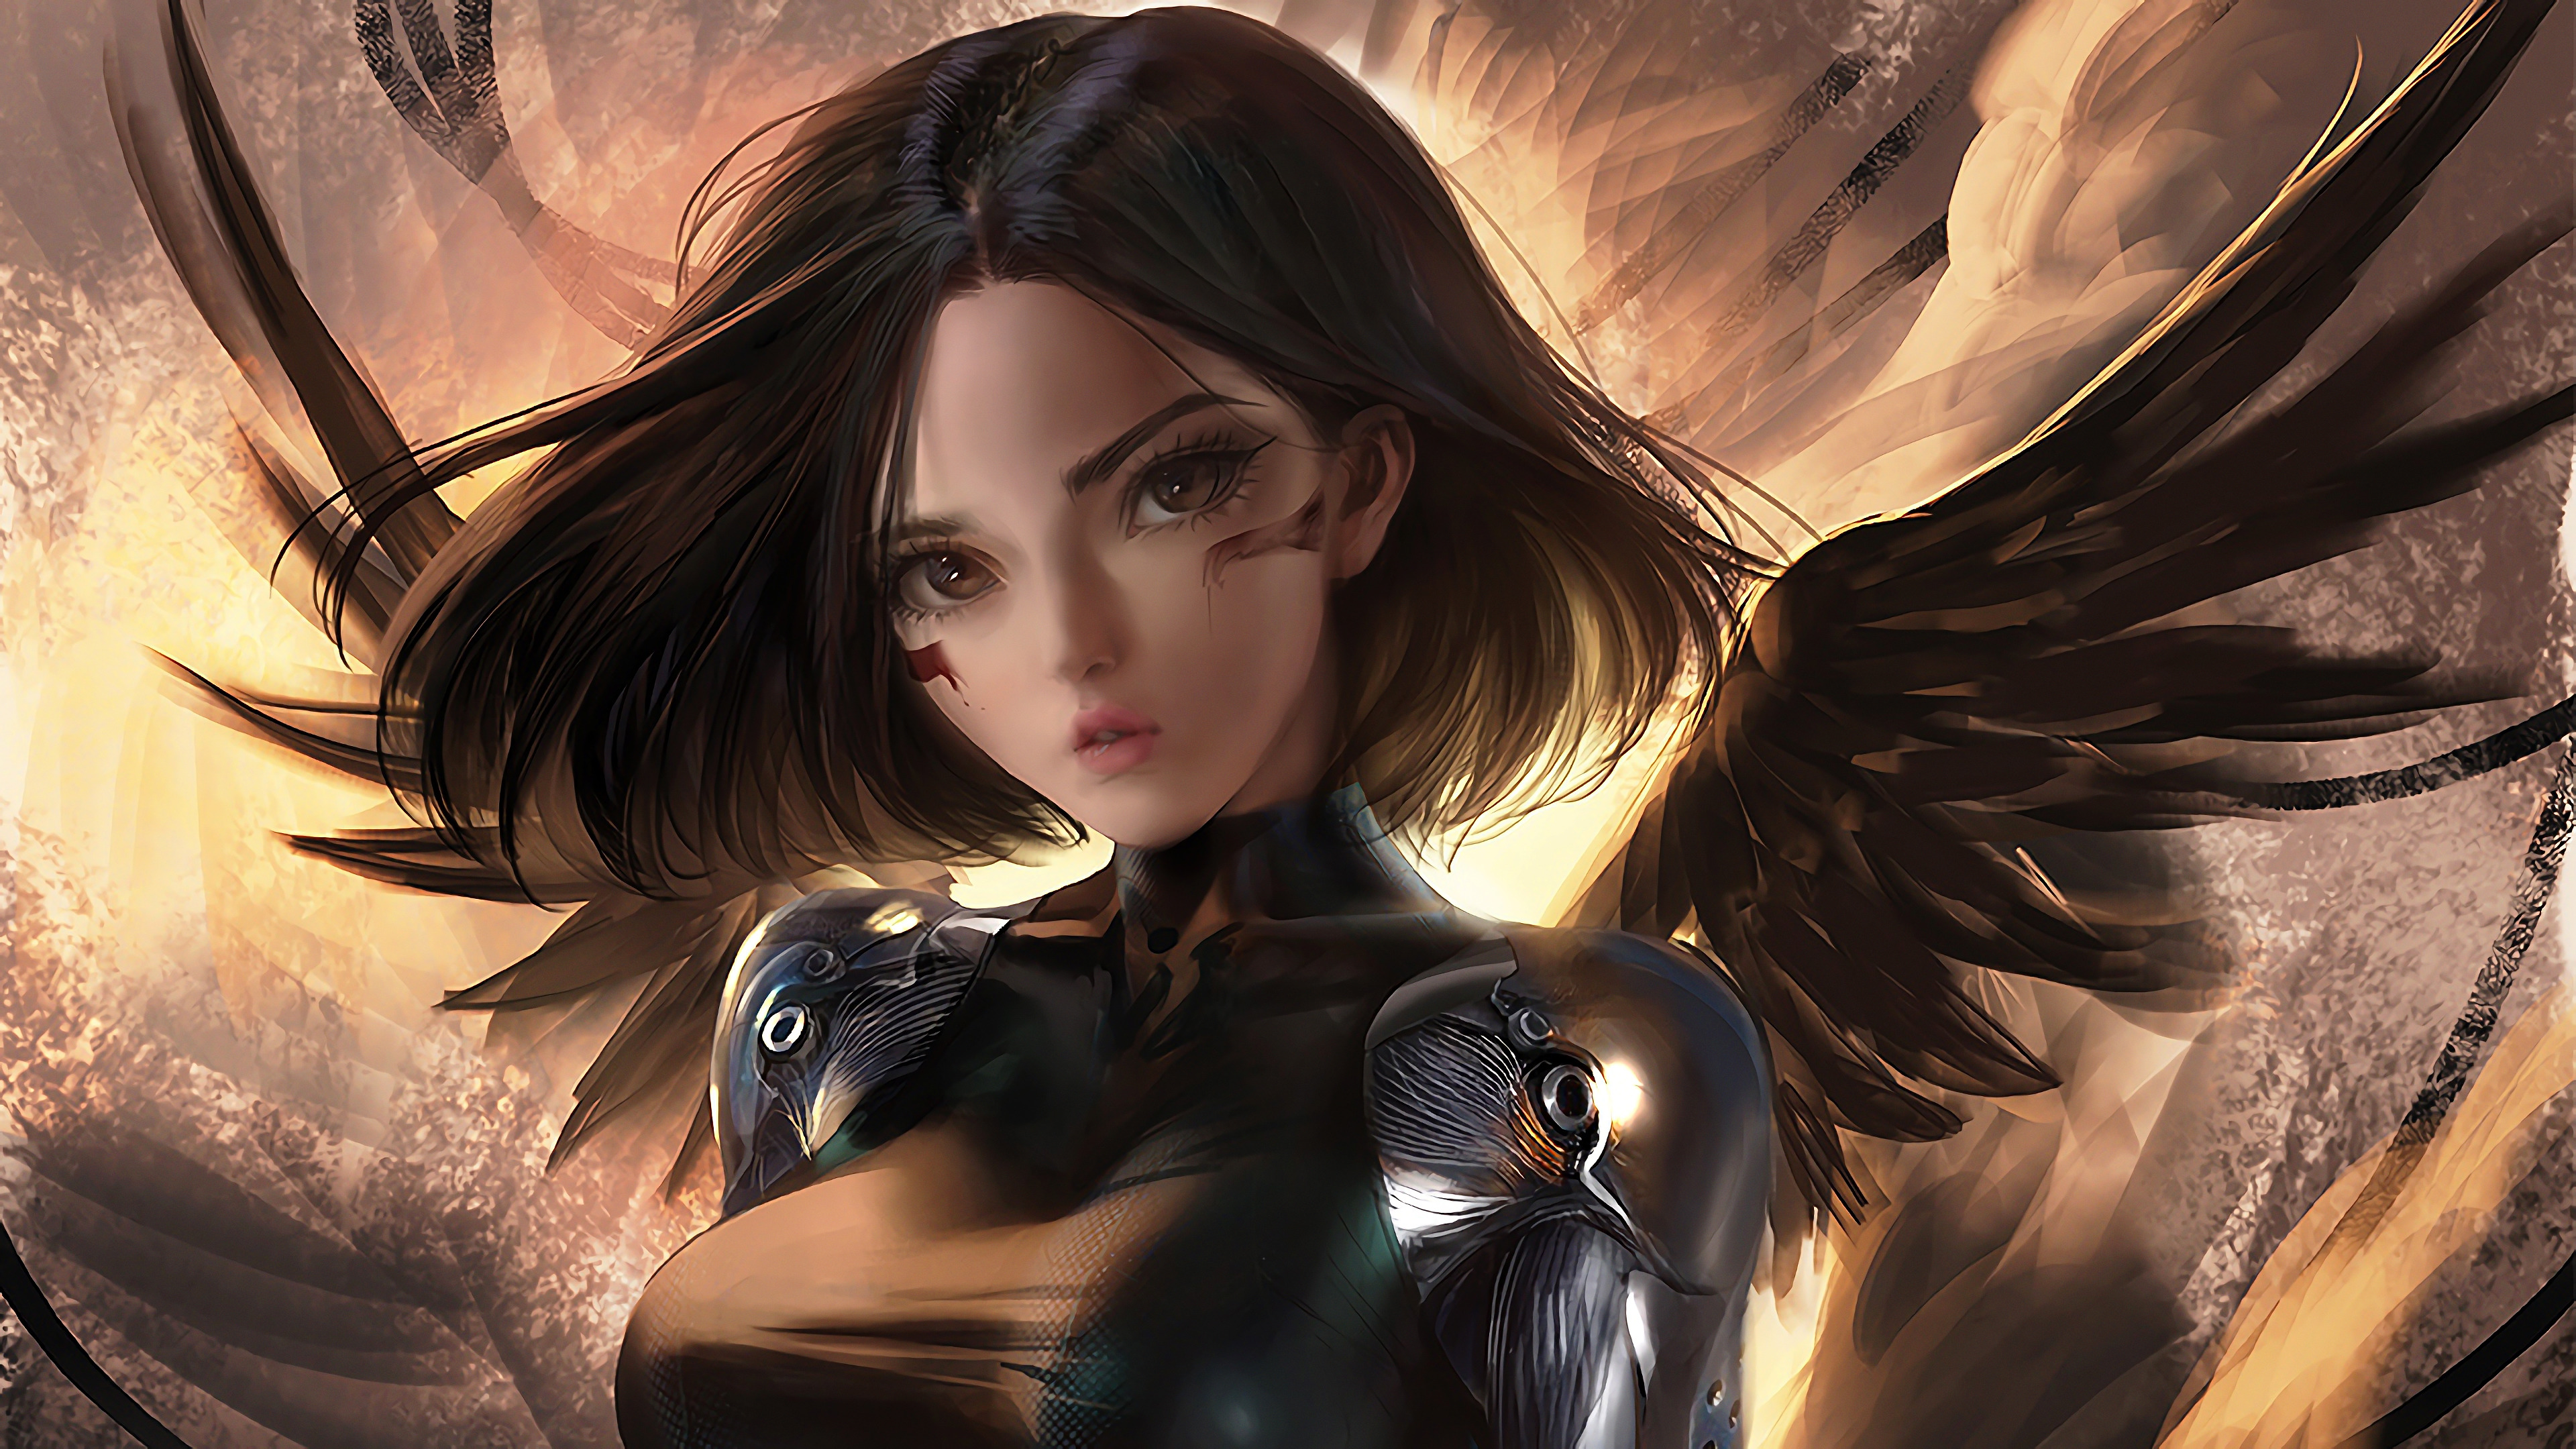 Wallpapers Alita Battle Angel Wallpapers